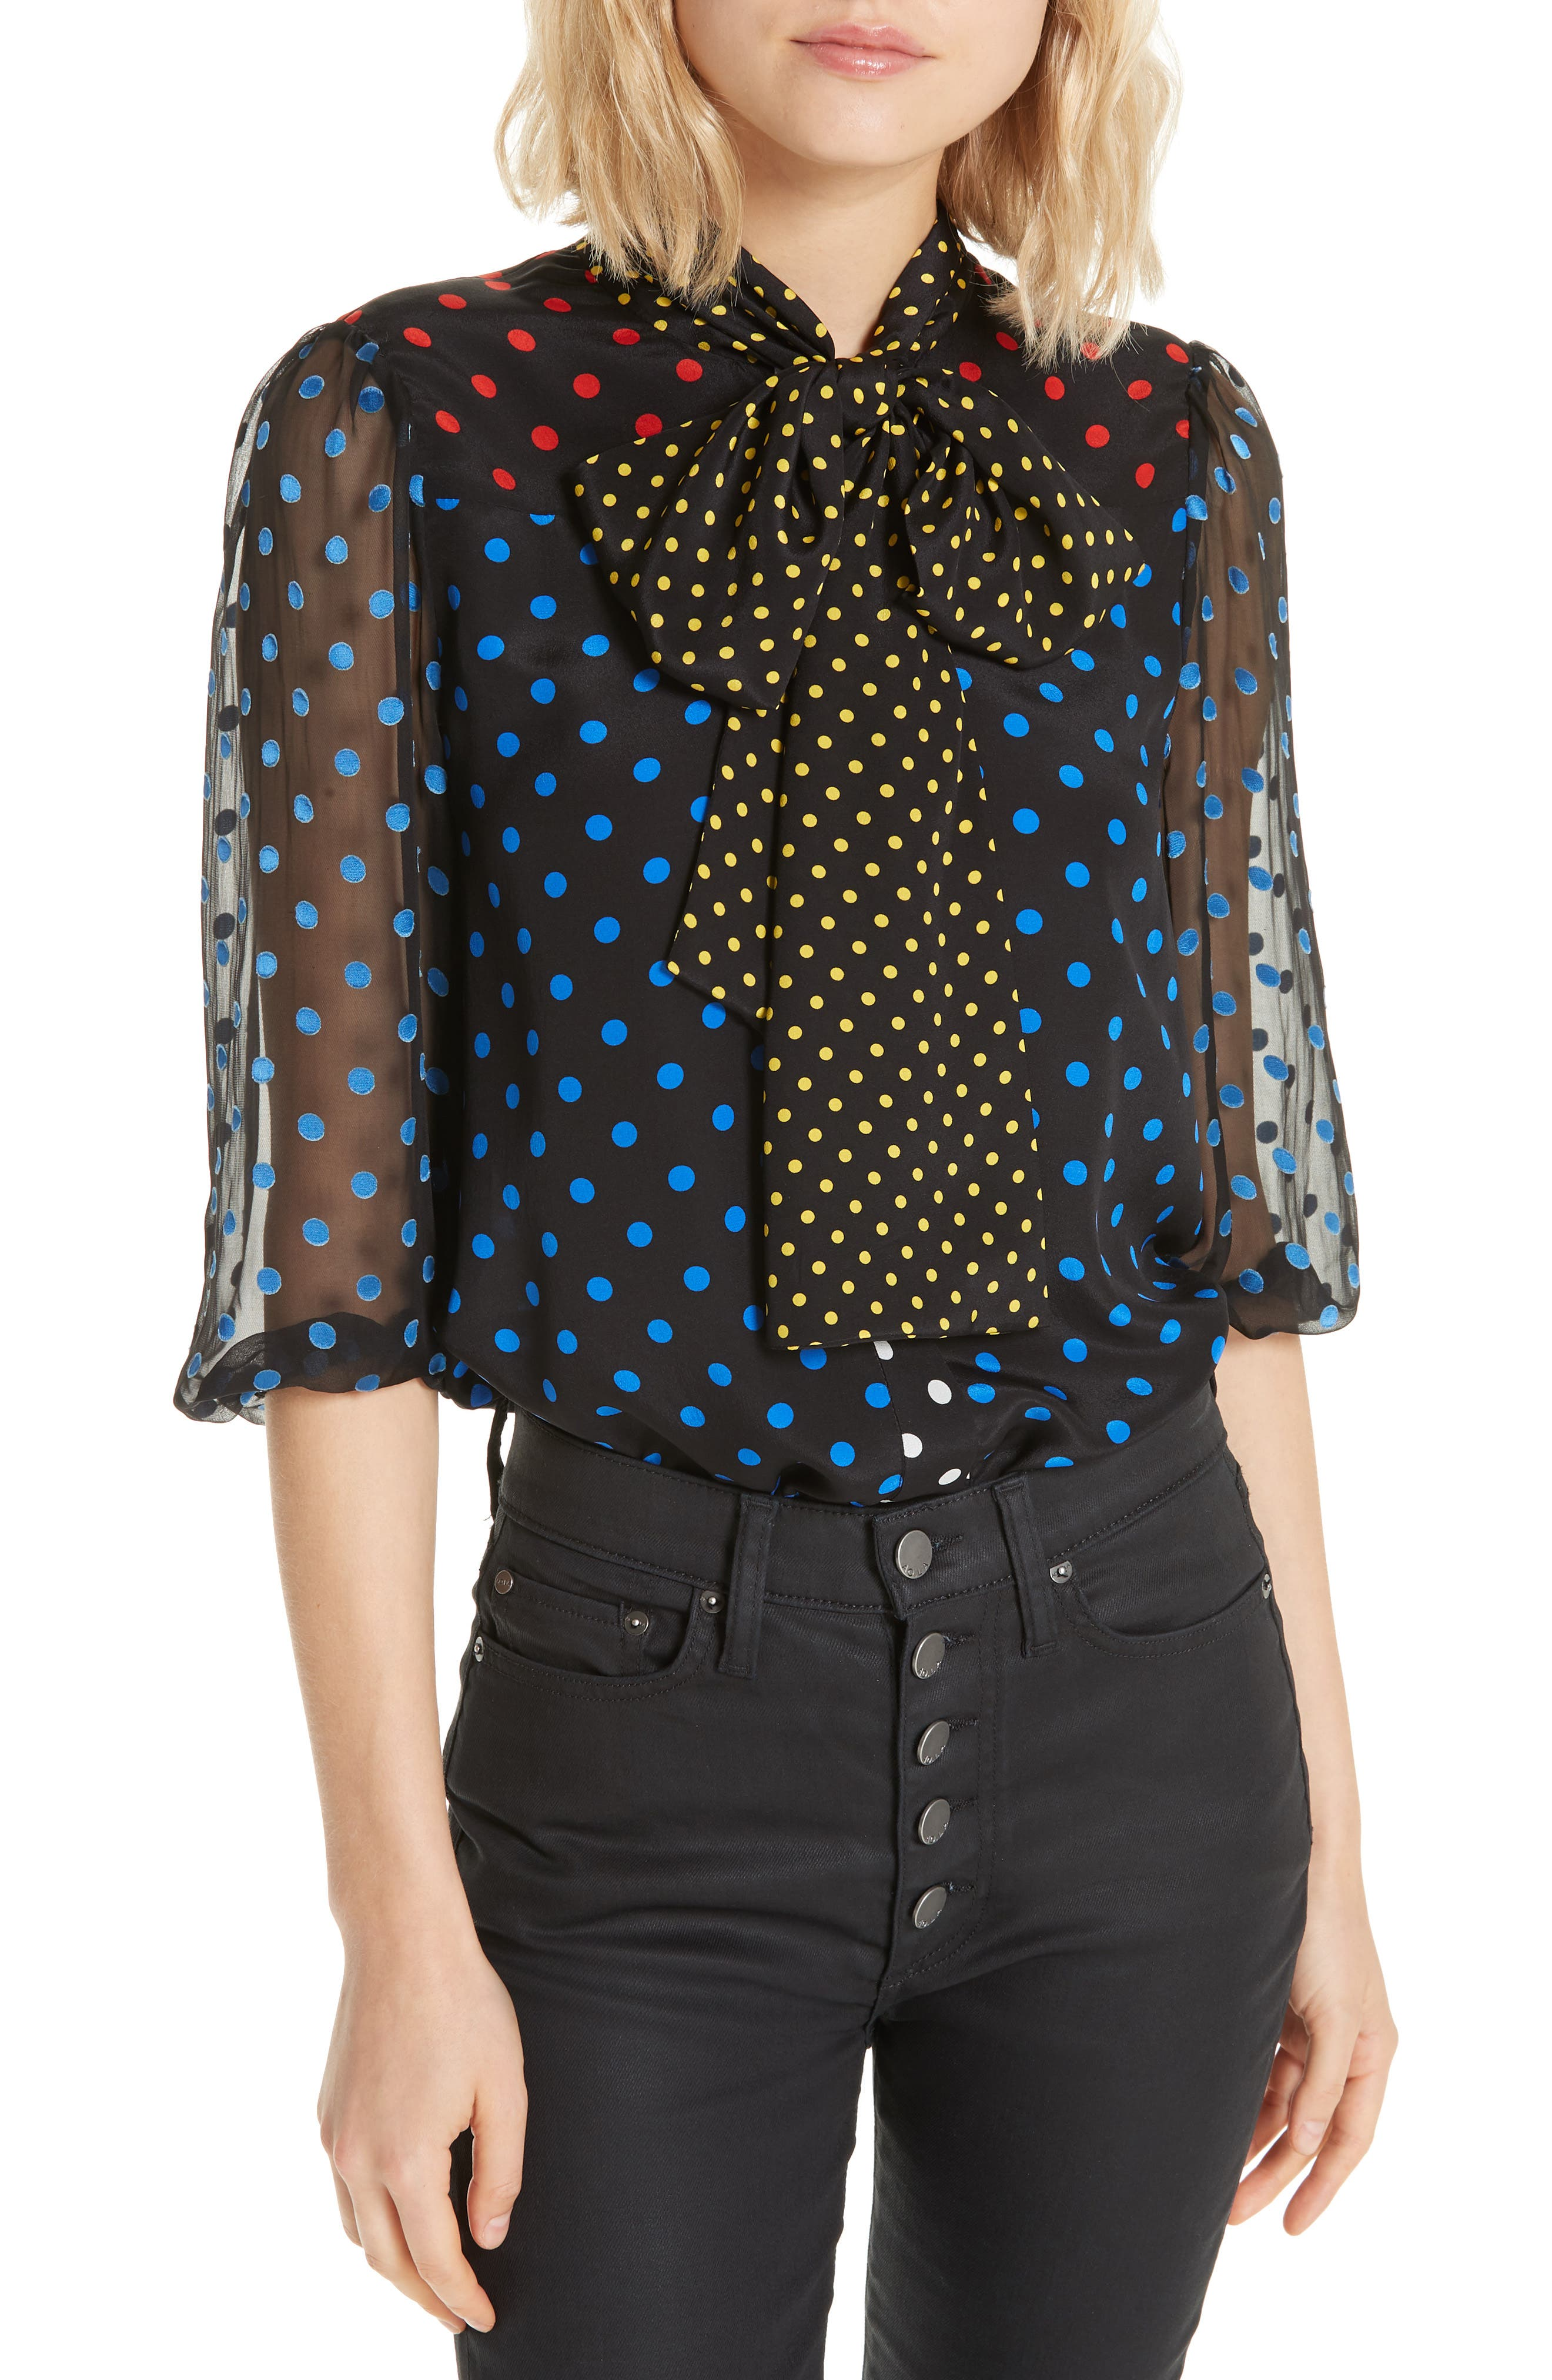 ALICE + OLIVIA, Jeannie Bow Neck Blouse, Main thumbnail 1, color, 001